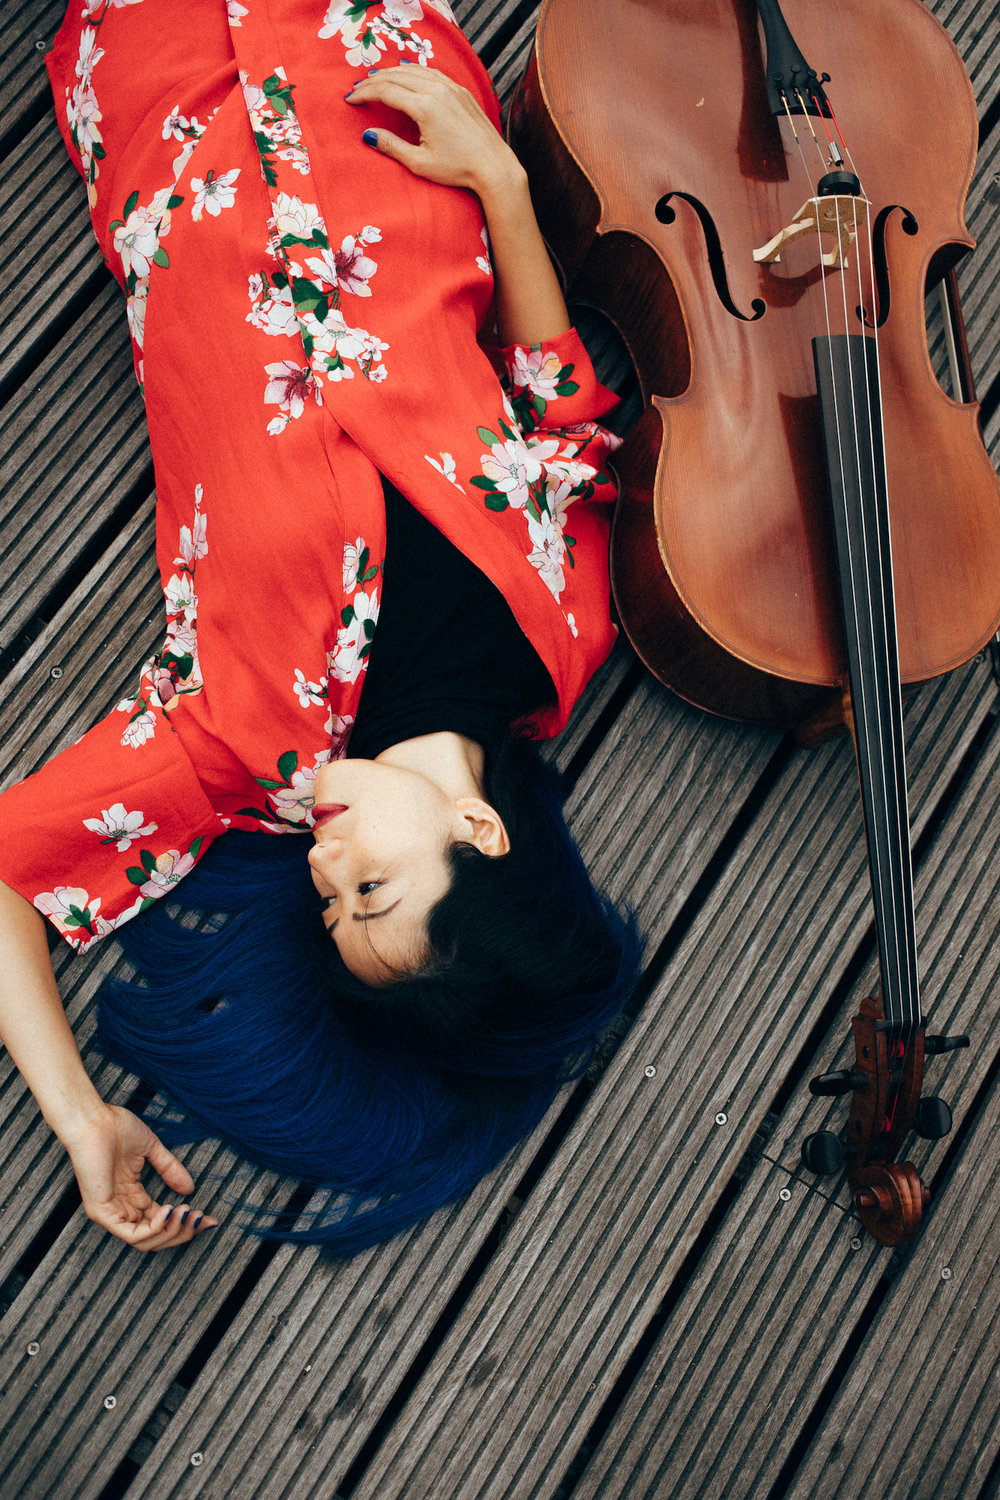 The-Wong-Janice-session-cellist-Amsterdam-photo-shoot-by-Hellen-Koroleva-instagram-imaginationinyou.jpg